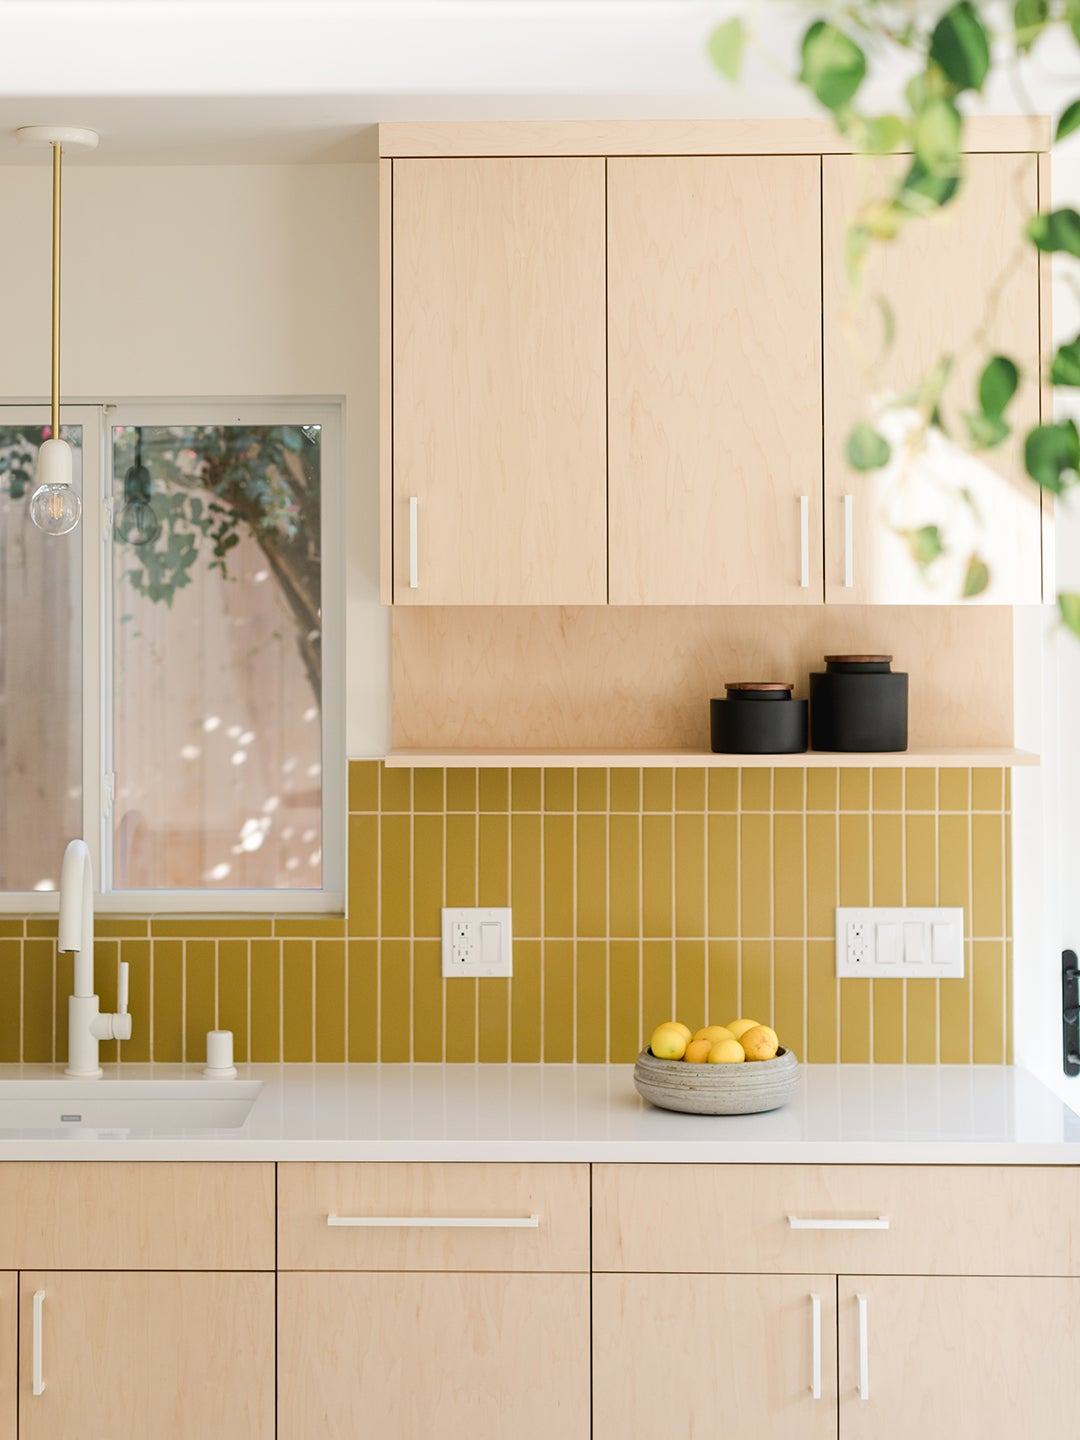 light wood cabinets and mustard yellow backslpahs tile